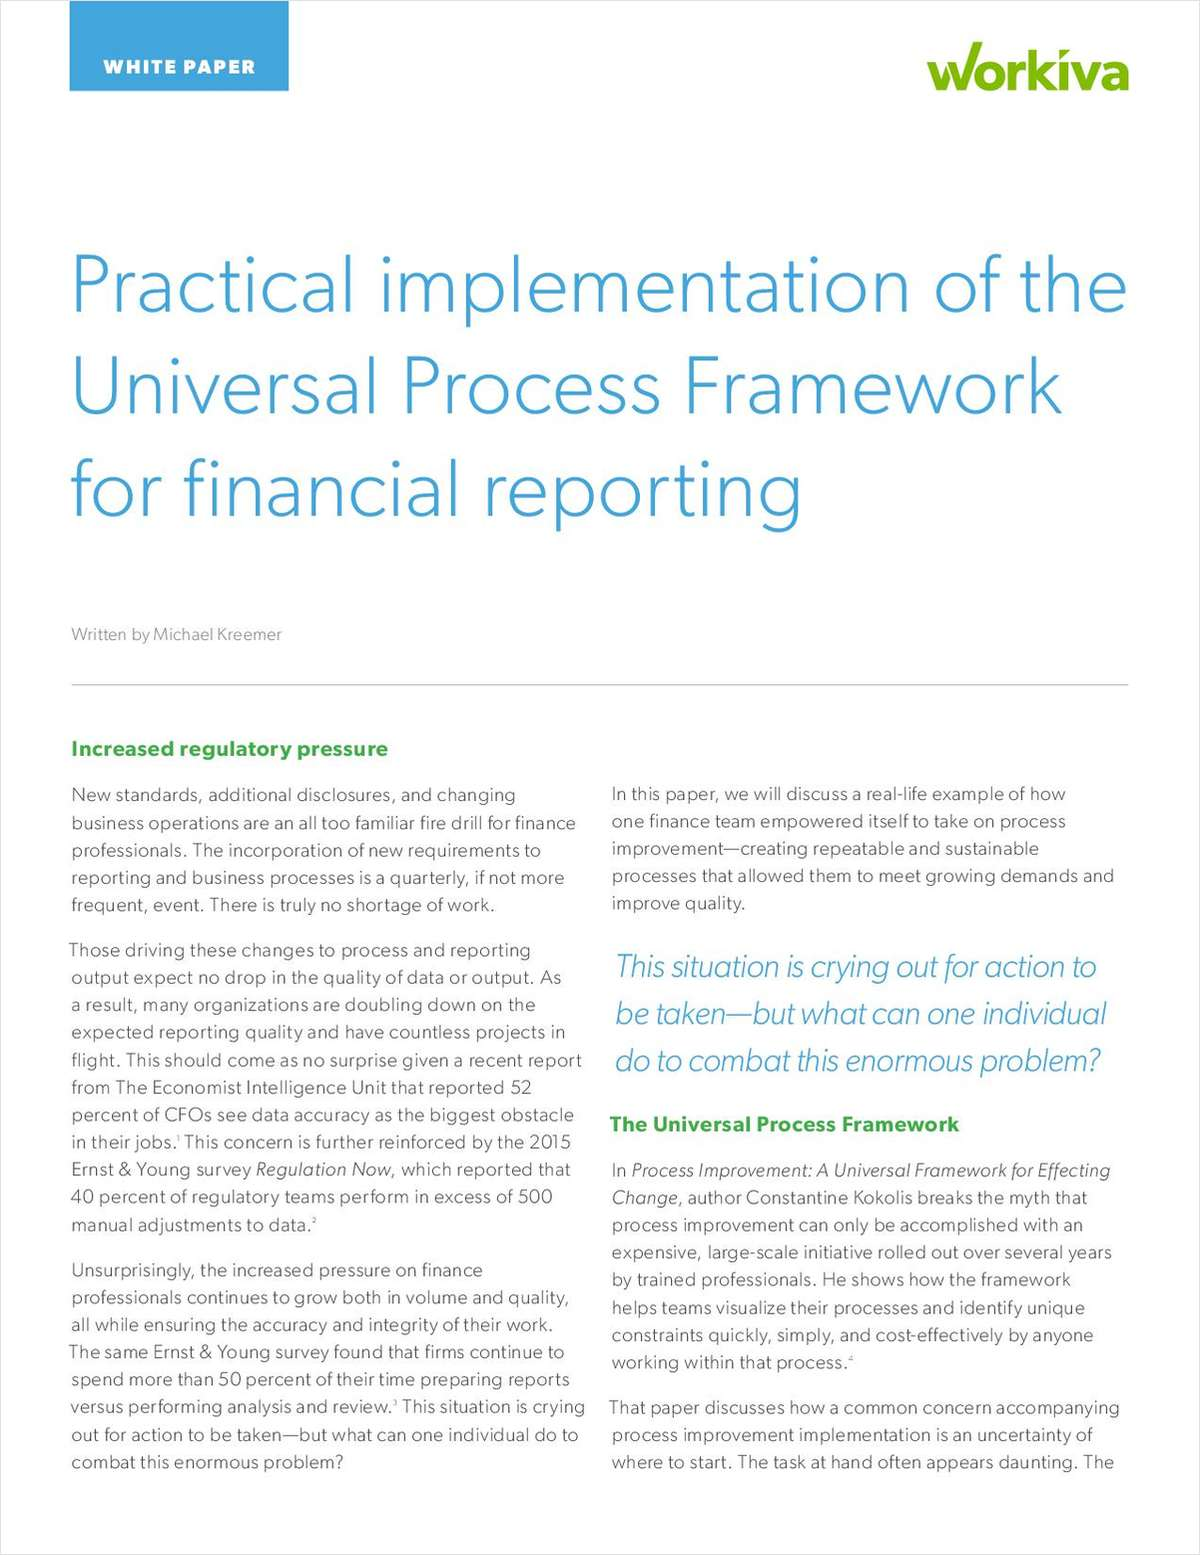 Financial Reporting Process Improvement: How to Apply a Universal Framework